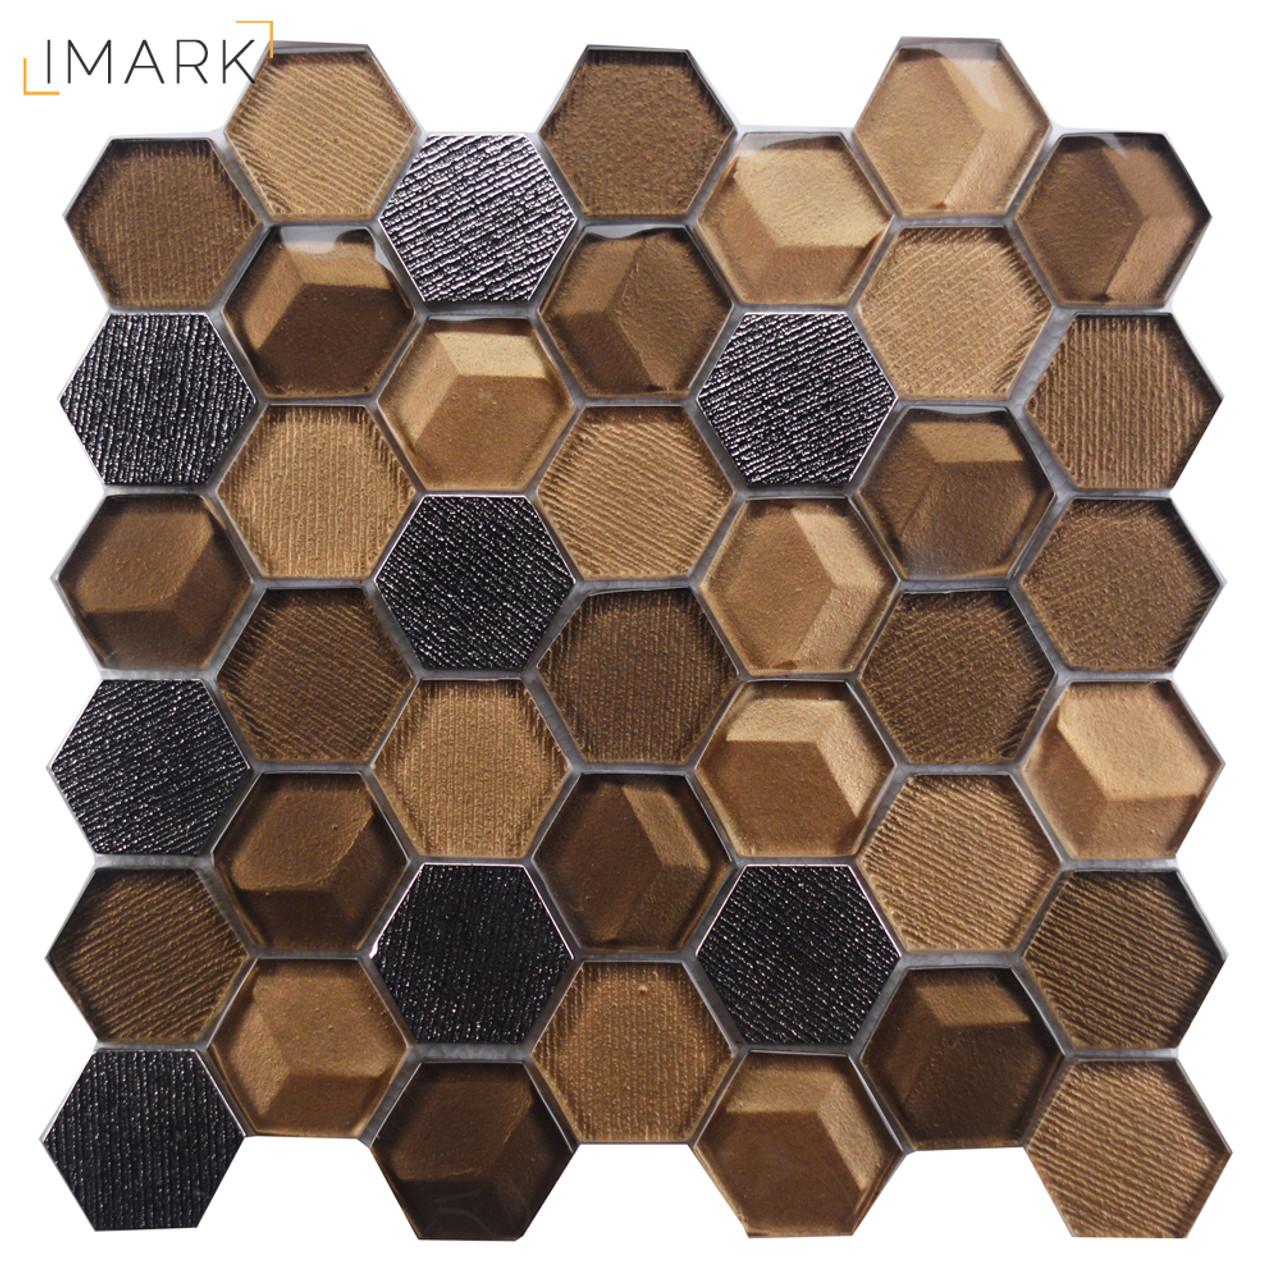 Hexagon tile backsplash